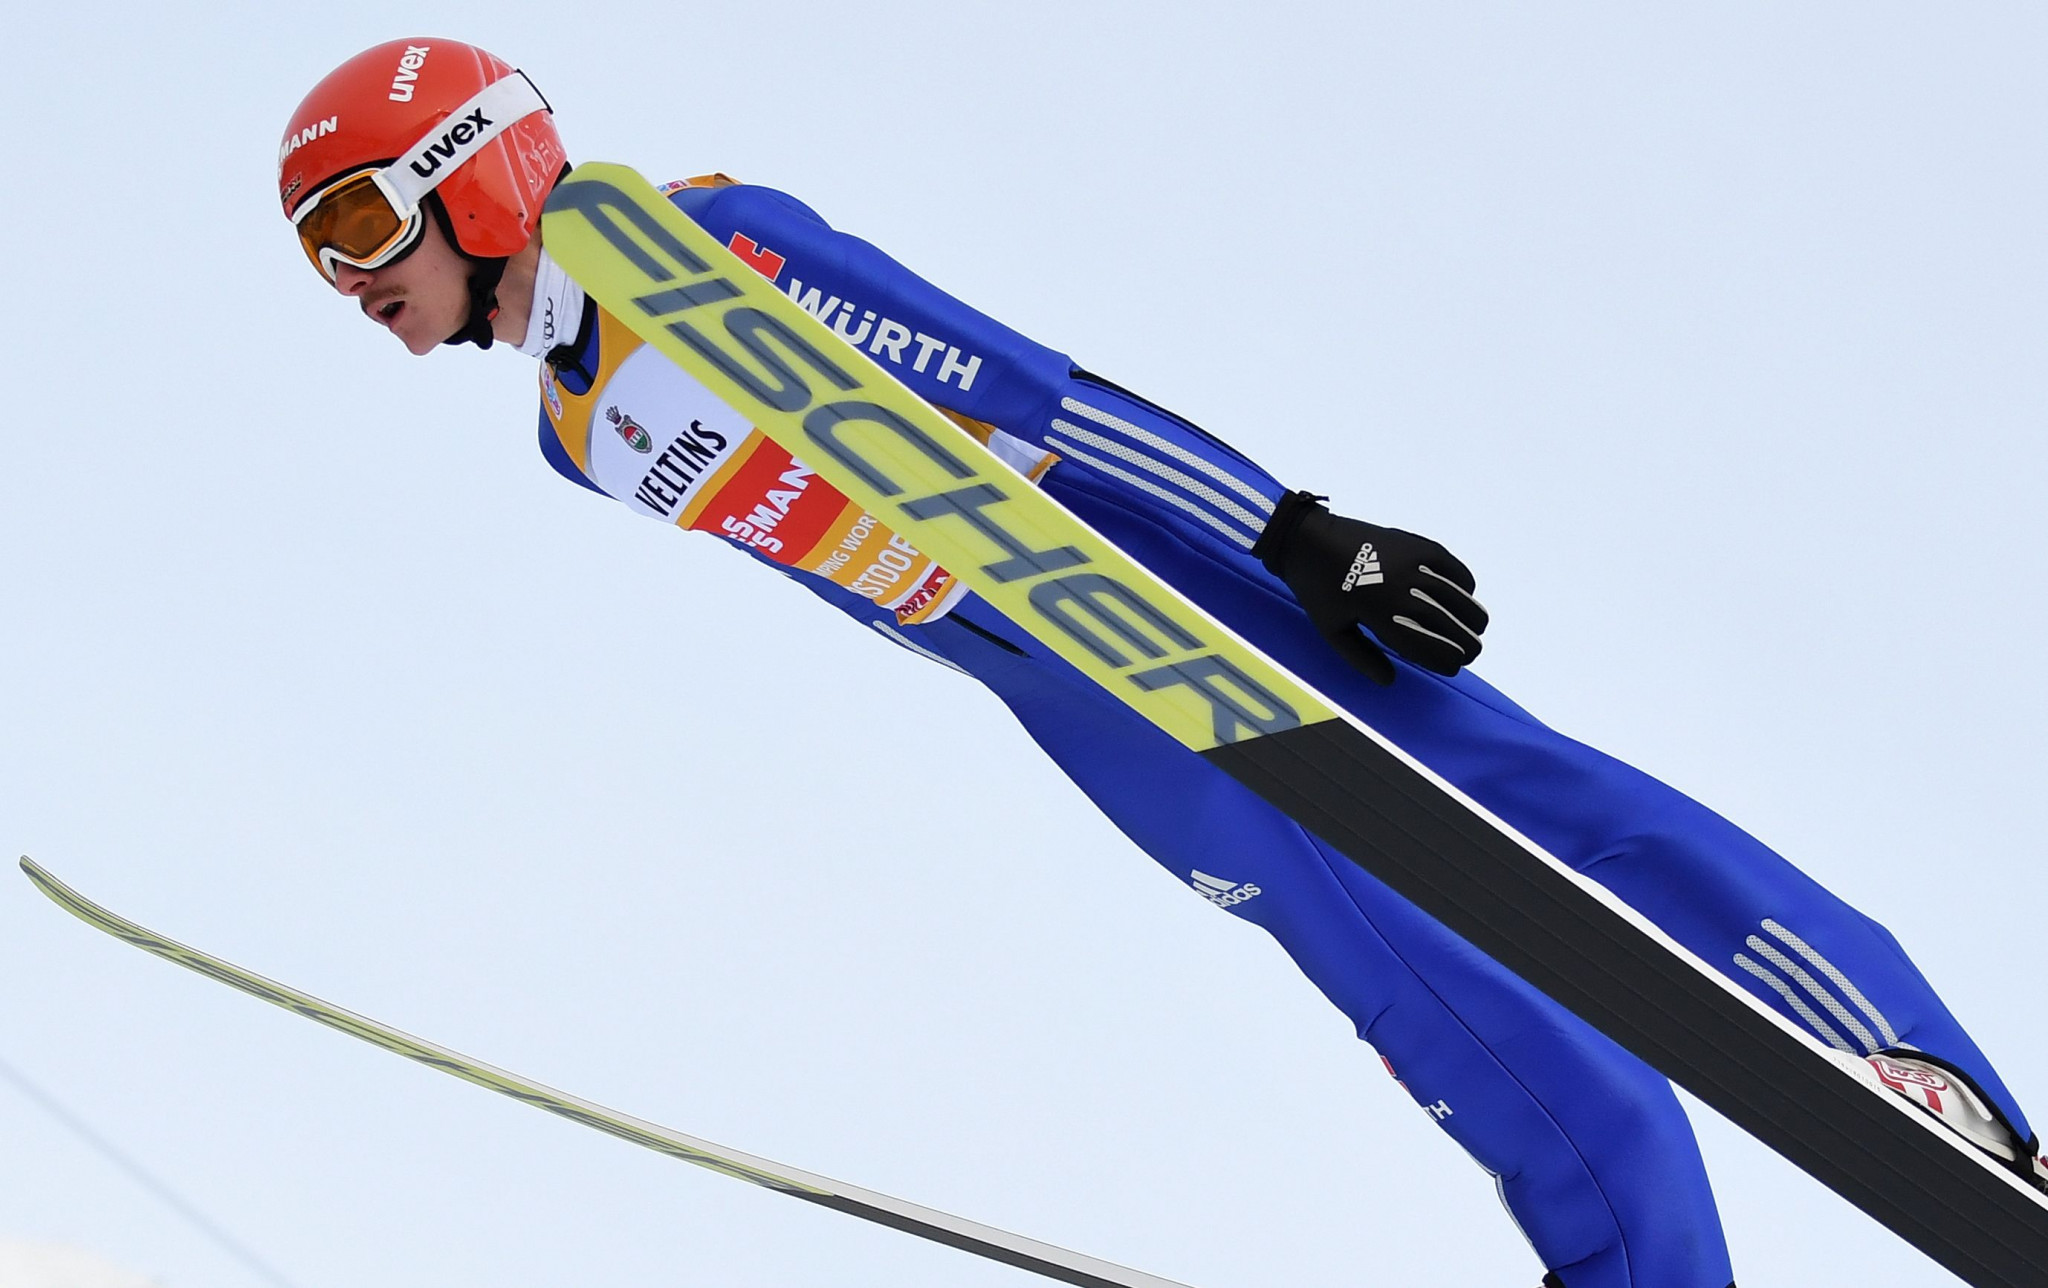 Freitag out on top once again during qualification for ski jump Four Hills event in Oberstdorf